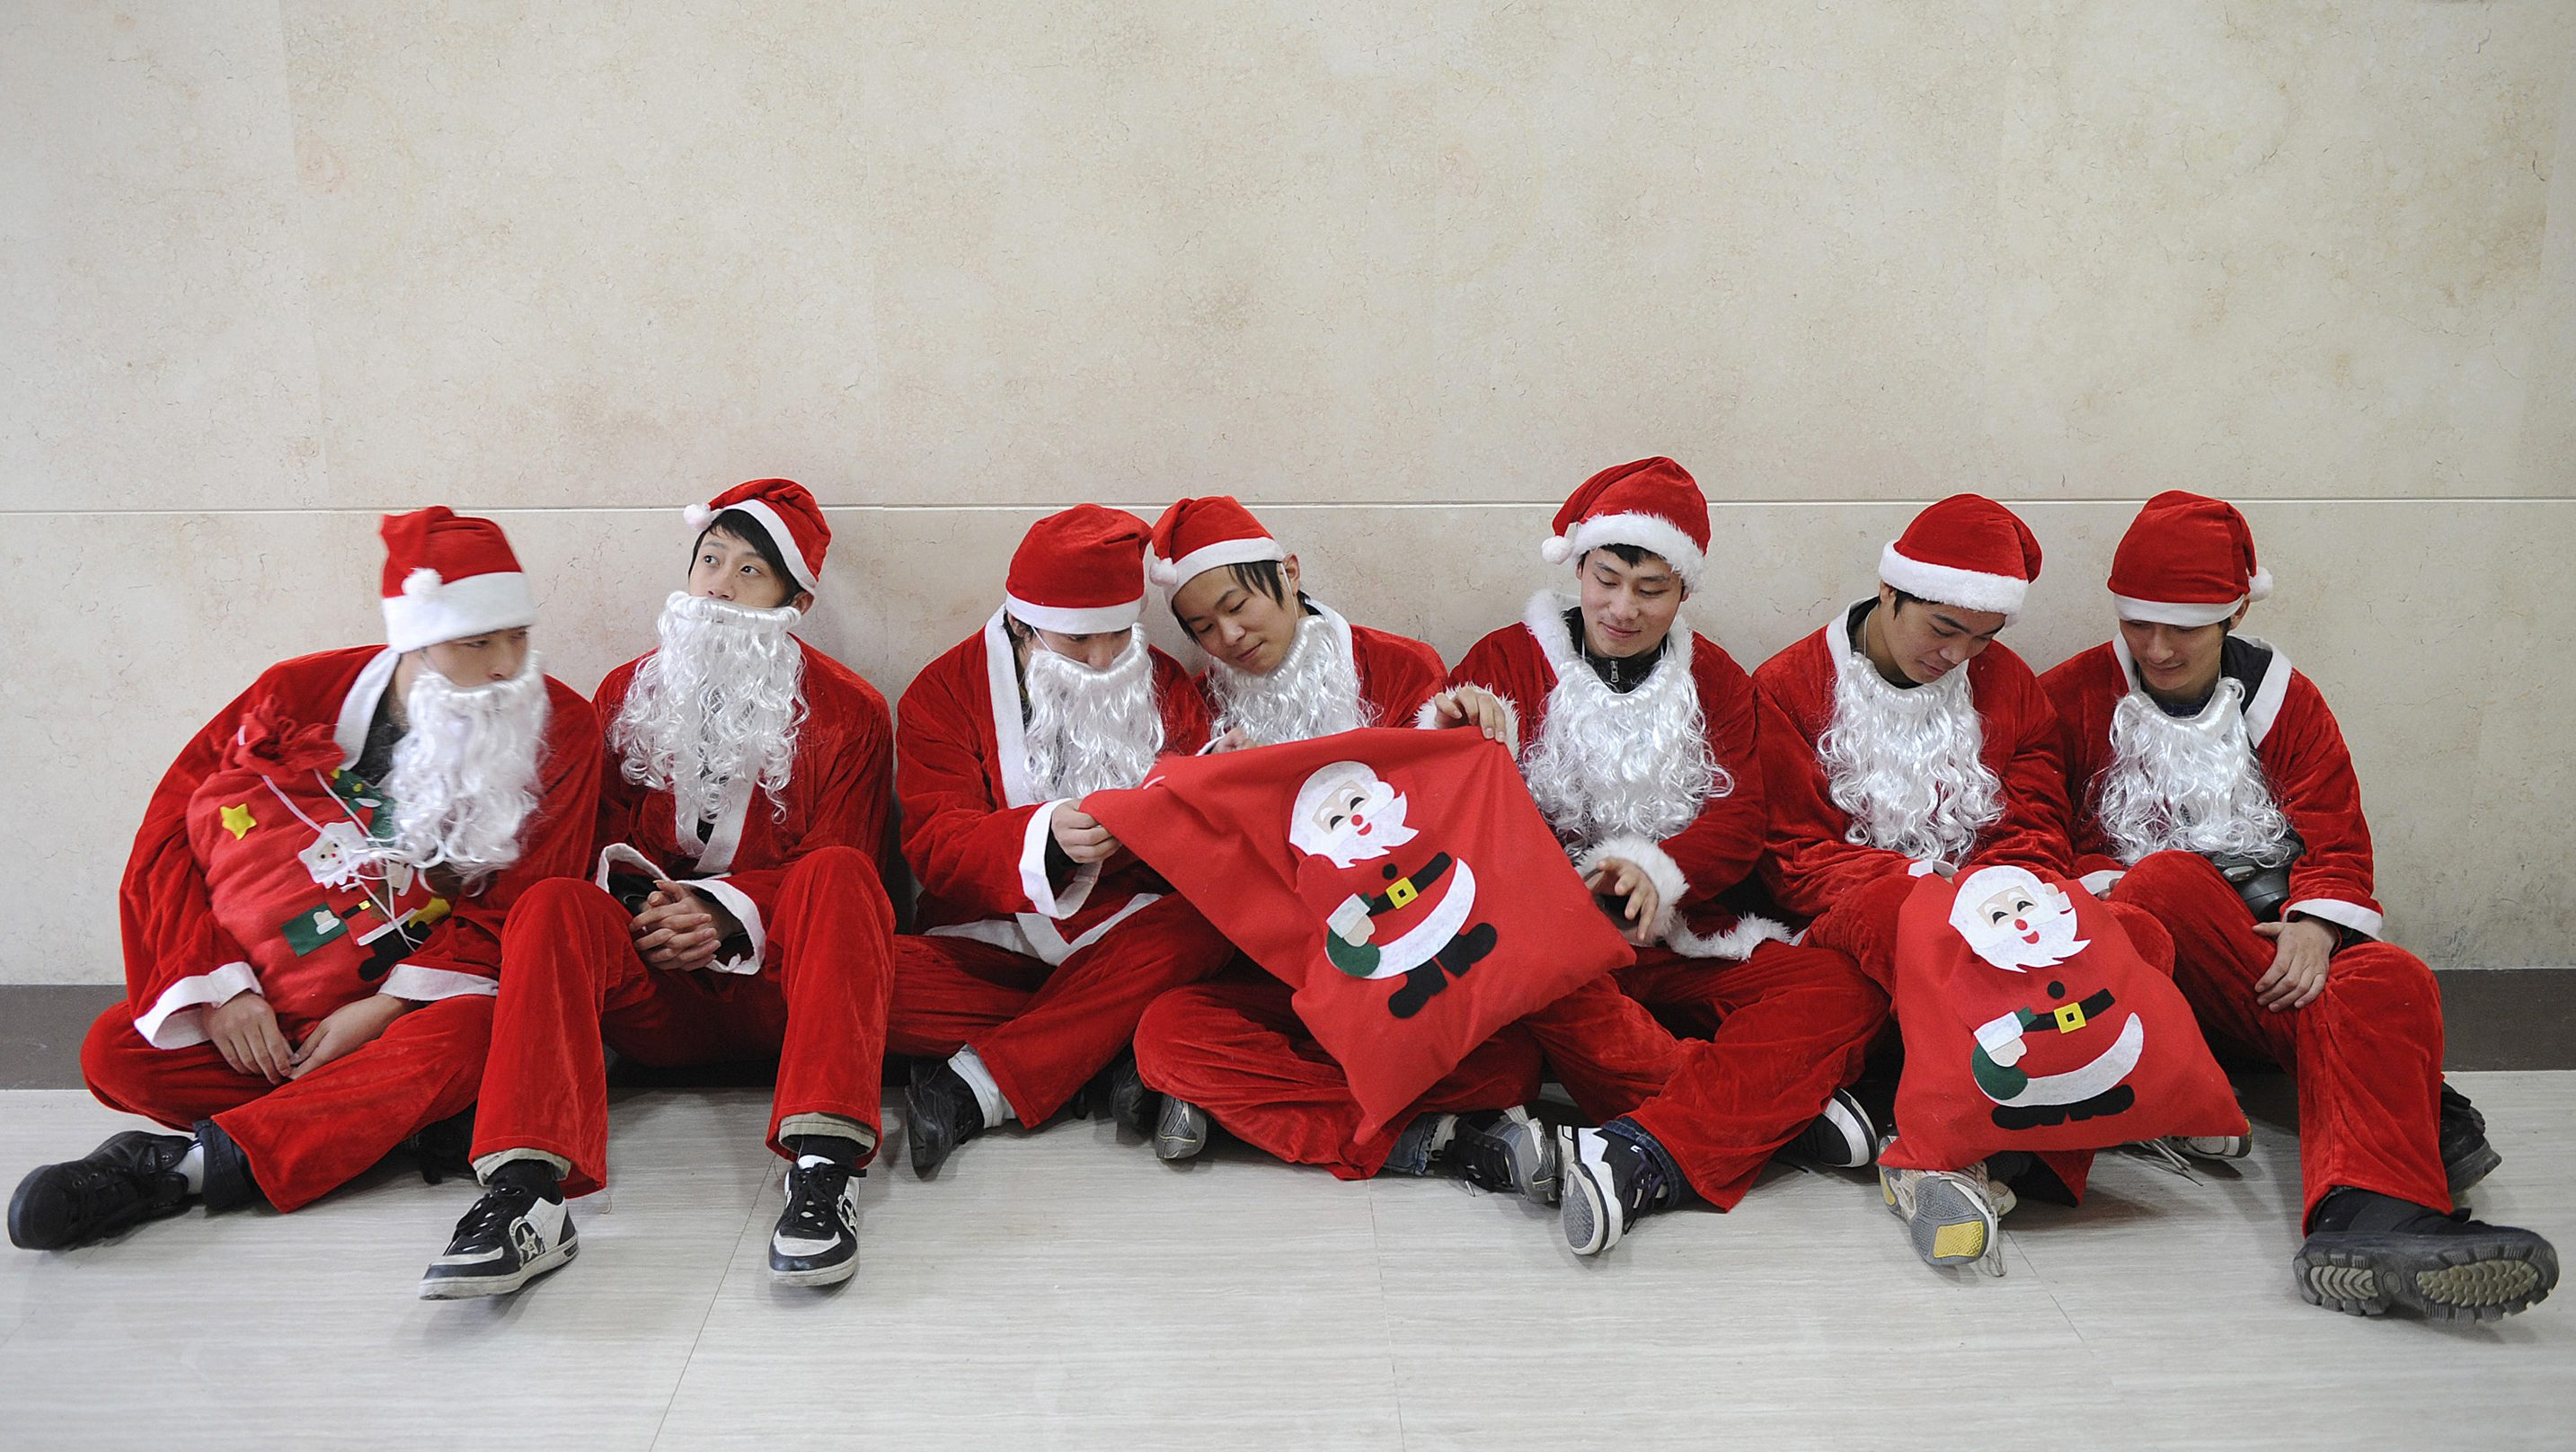 Workers dressed as Santa Claus to celebrate the upcoming Christmas Day, rest at a shopping mall in Hefei, in Anhui province December 24, 2010. REUTERS/Stringer (CHINA - Tags: RELIGION EMPLOYMENT BUSINESS SOCIETY) - GM1E6CO18W001